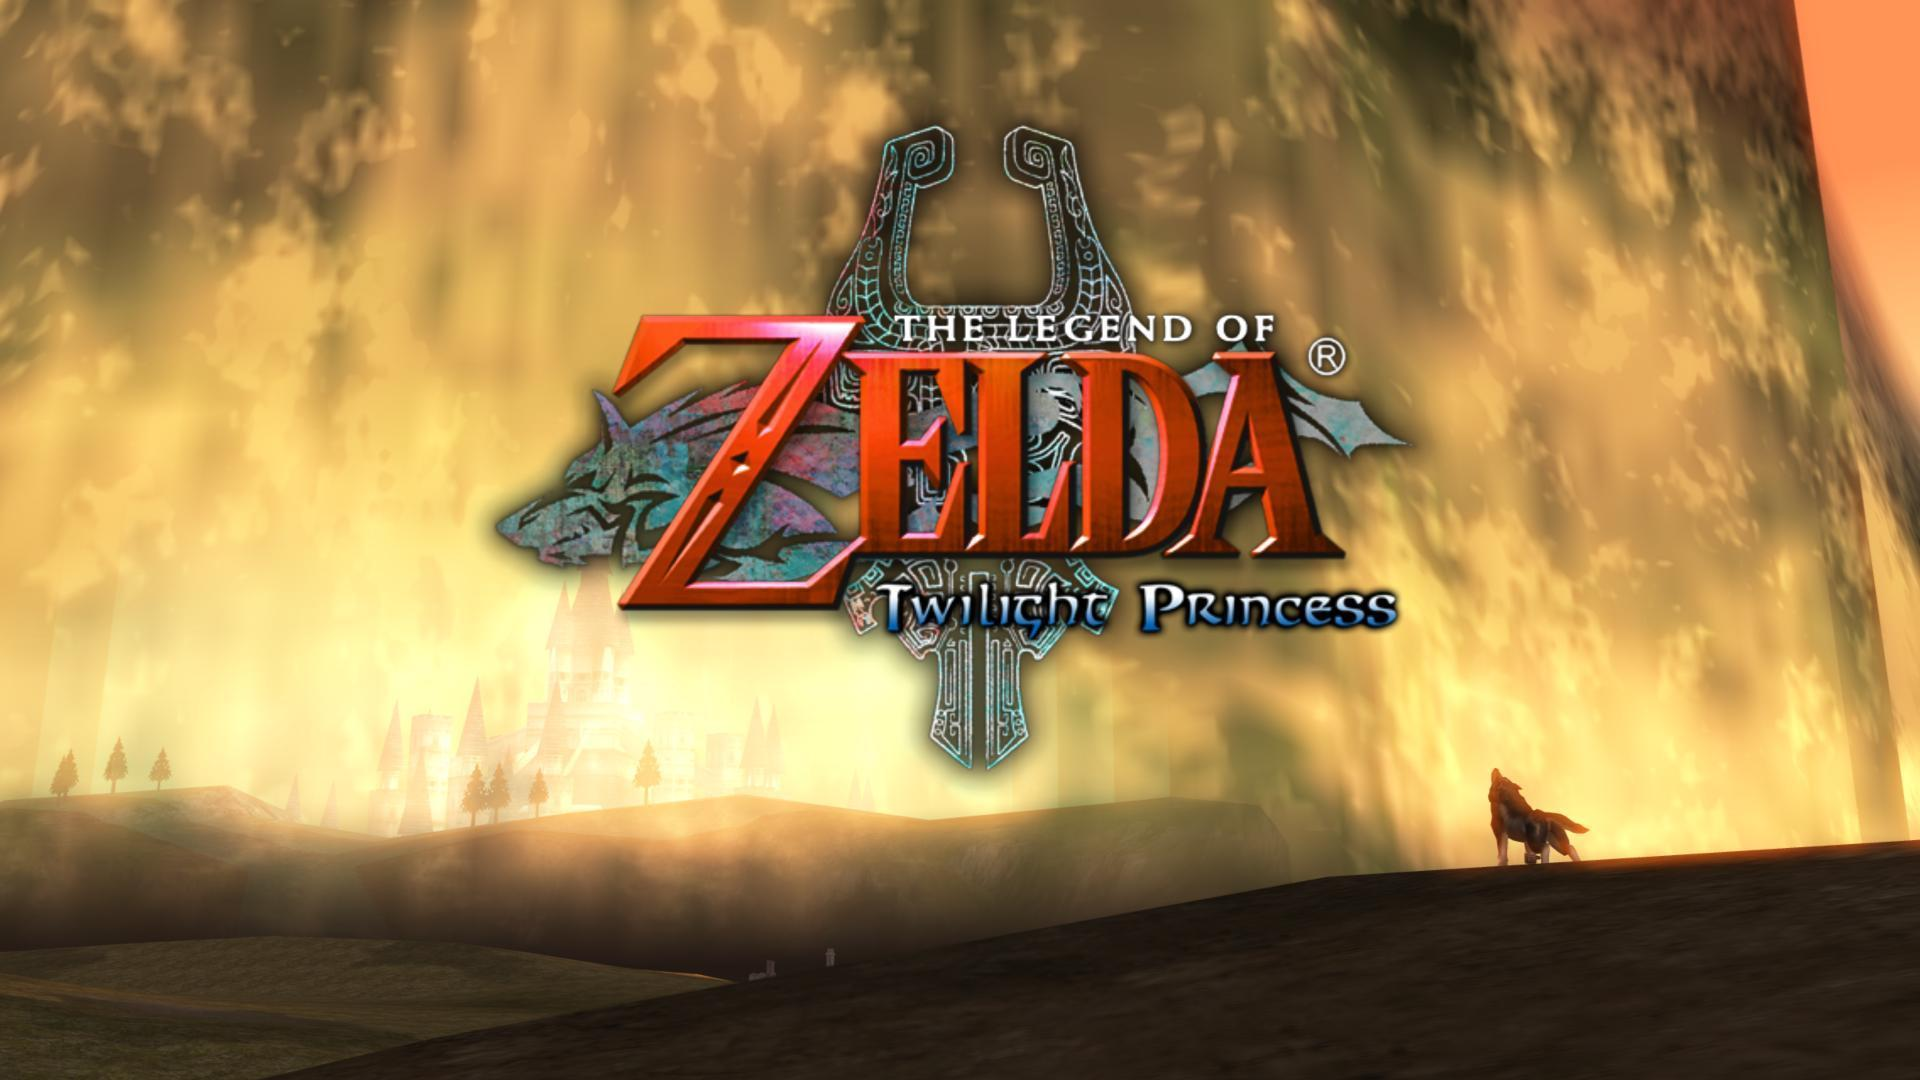 Legend Of Zelda Twilight Princess Wallpapers 1920x1080